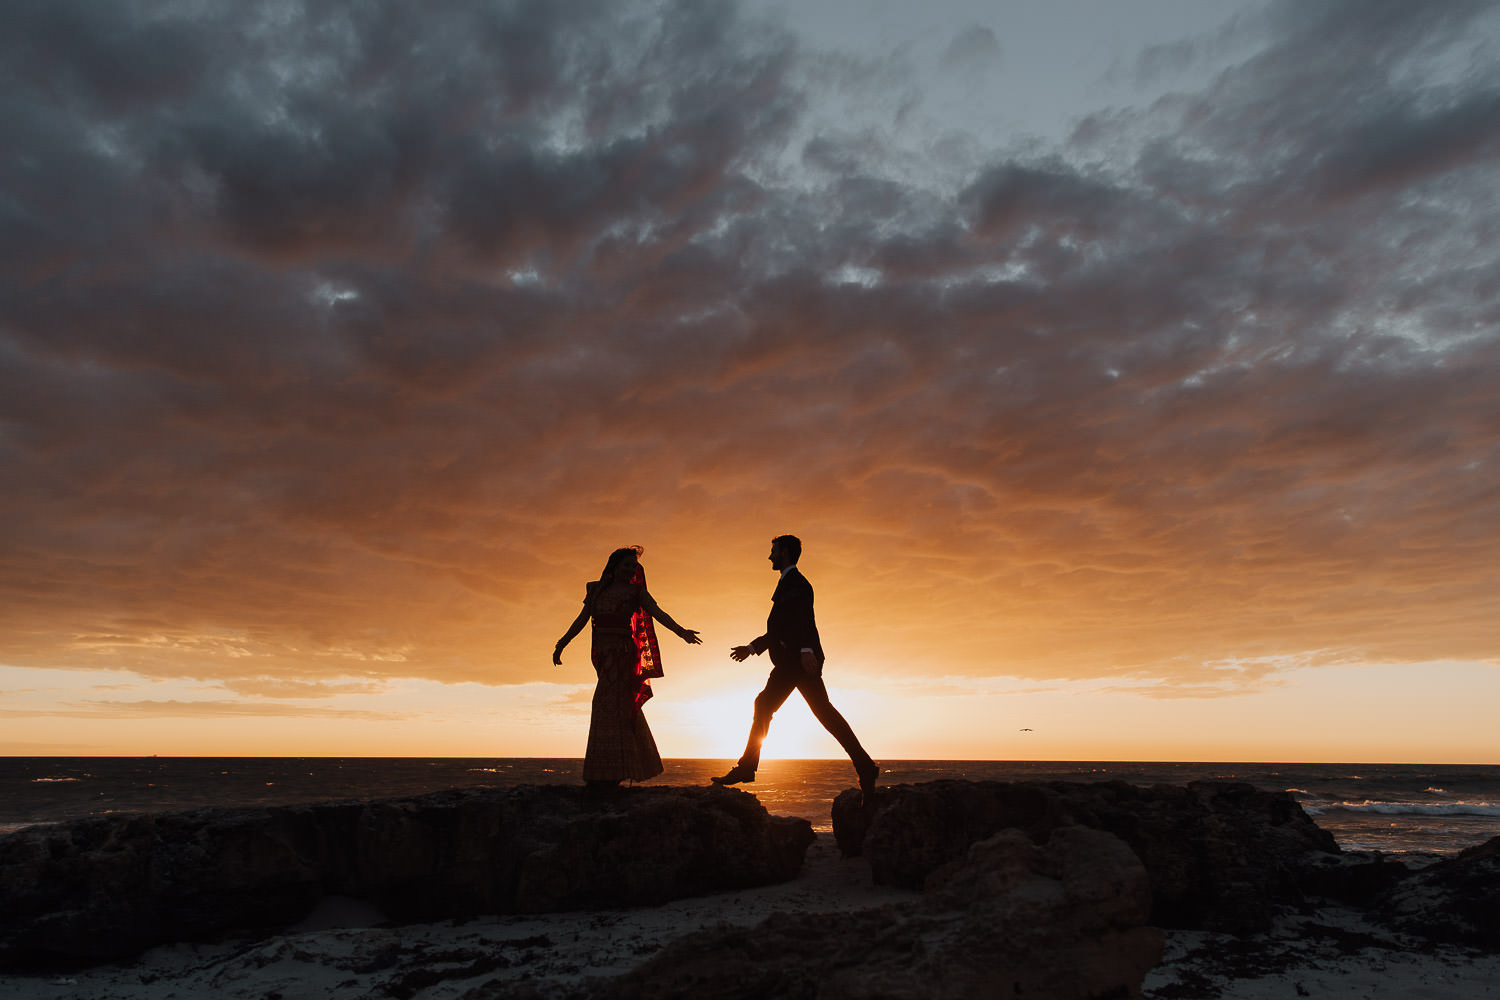 Groom leaping to his wife with sunset in the background